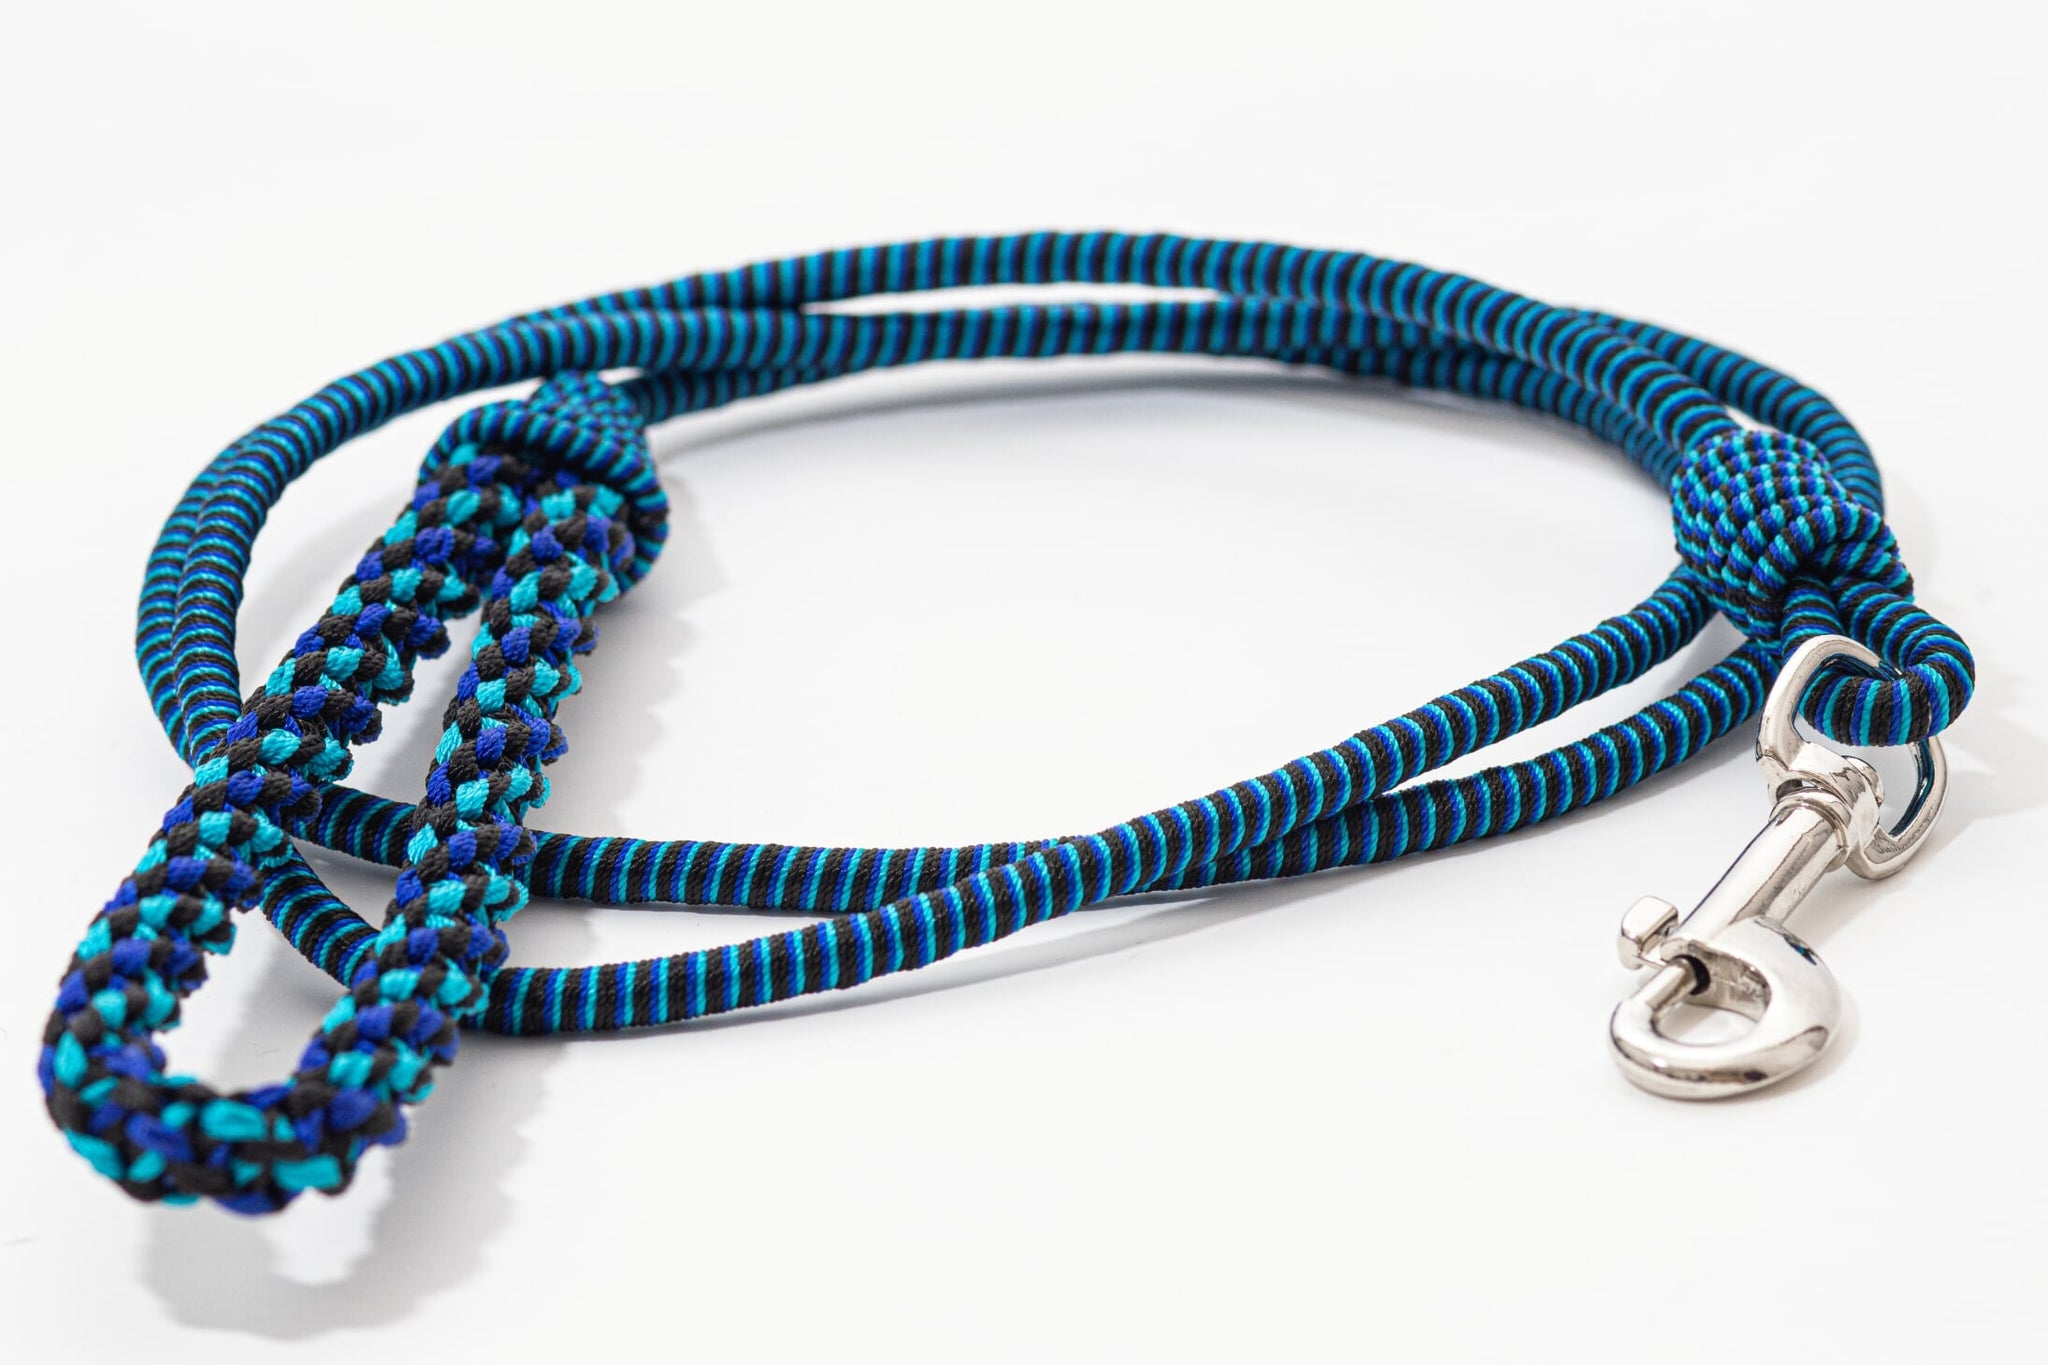 SEQUENCE dog leash- Blue combination